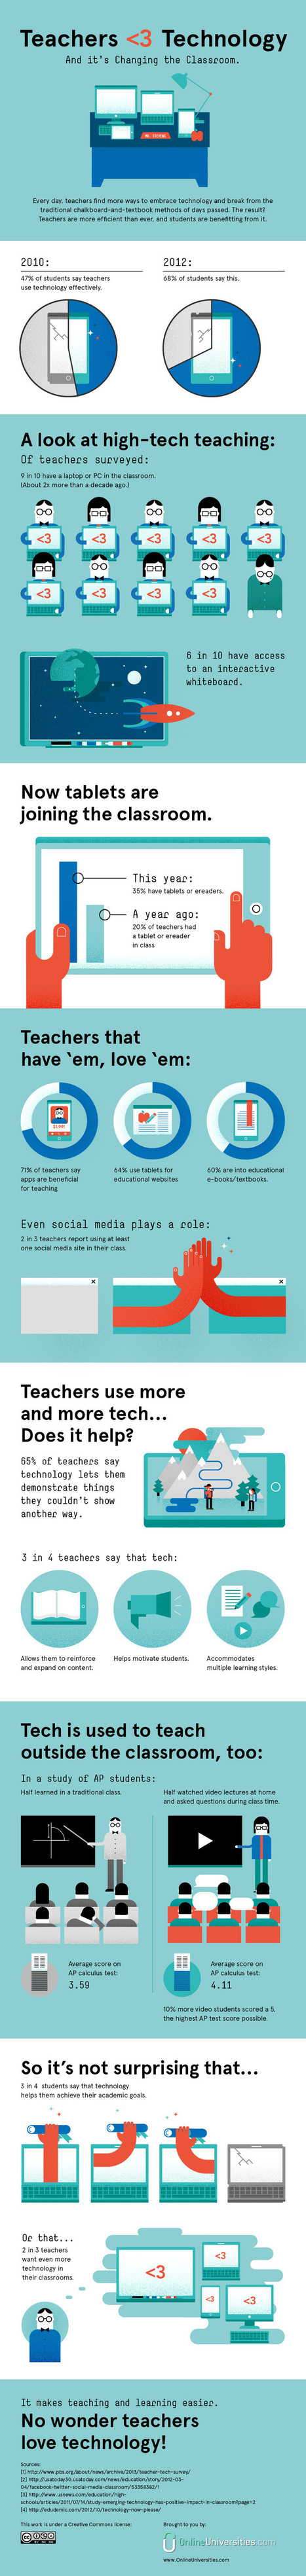 [Infografía] Teachers love technology | Juventud y TIC | Scoop.it